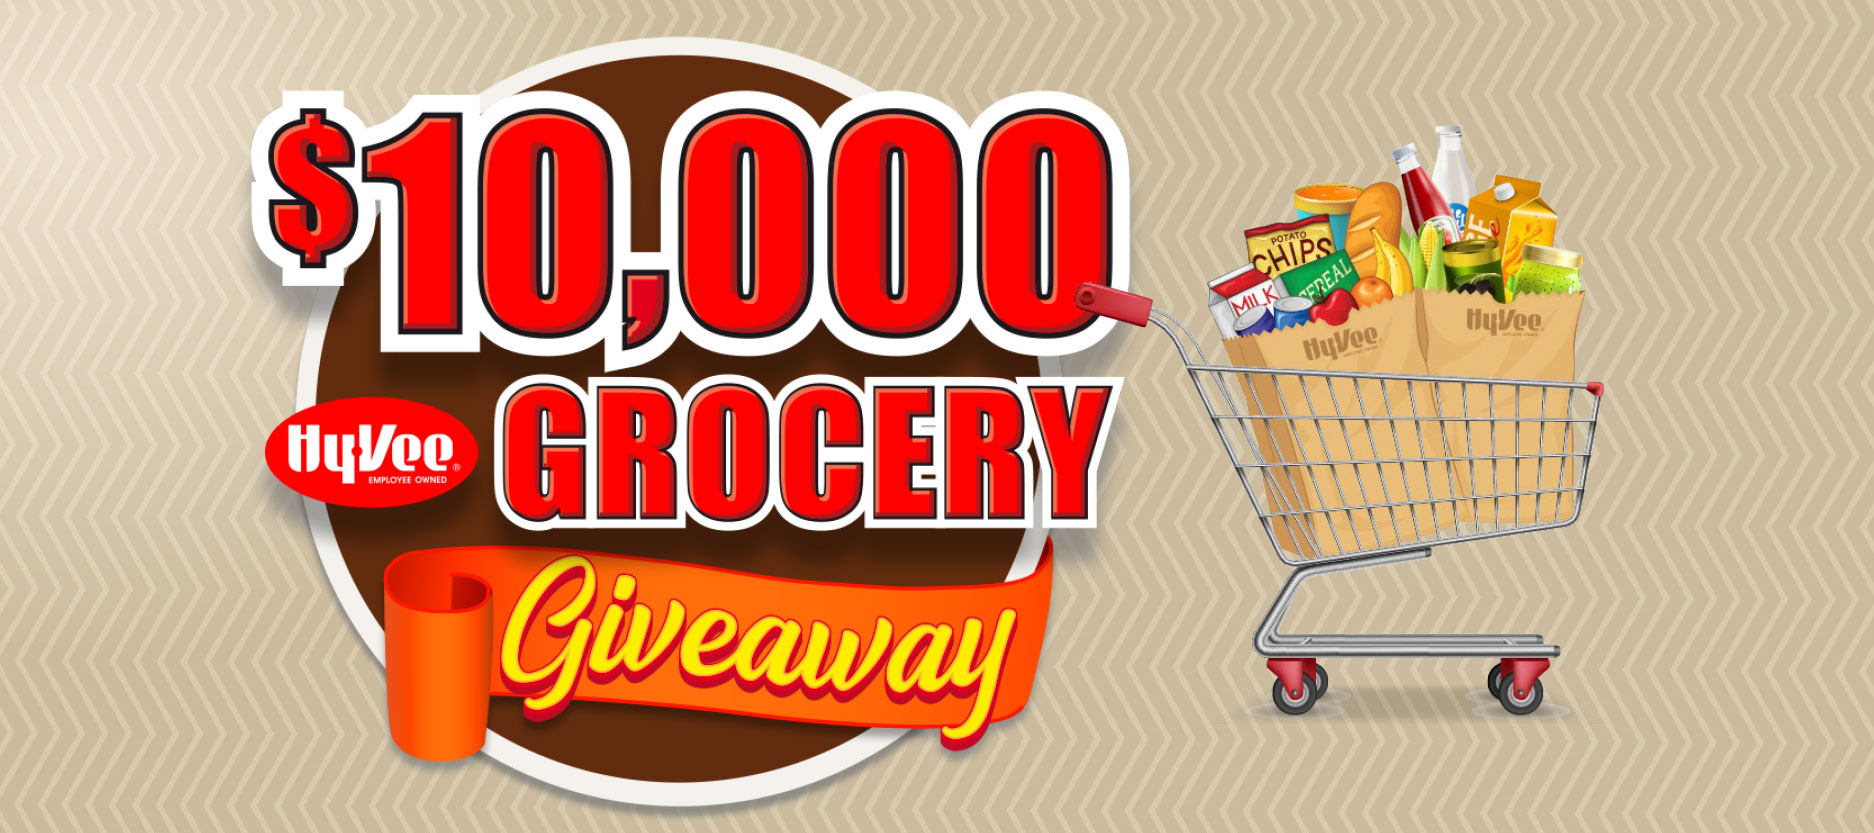 $10,000 Grocery Giveaway